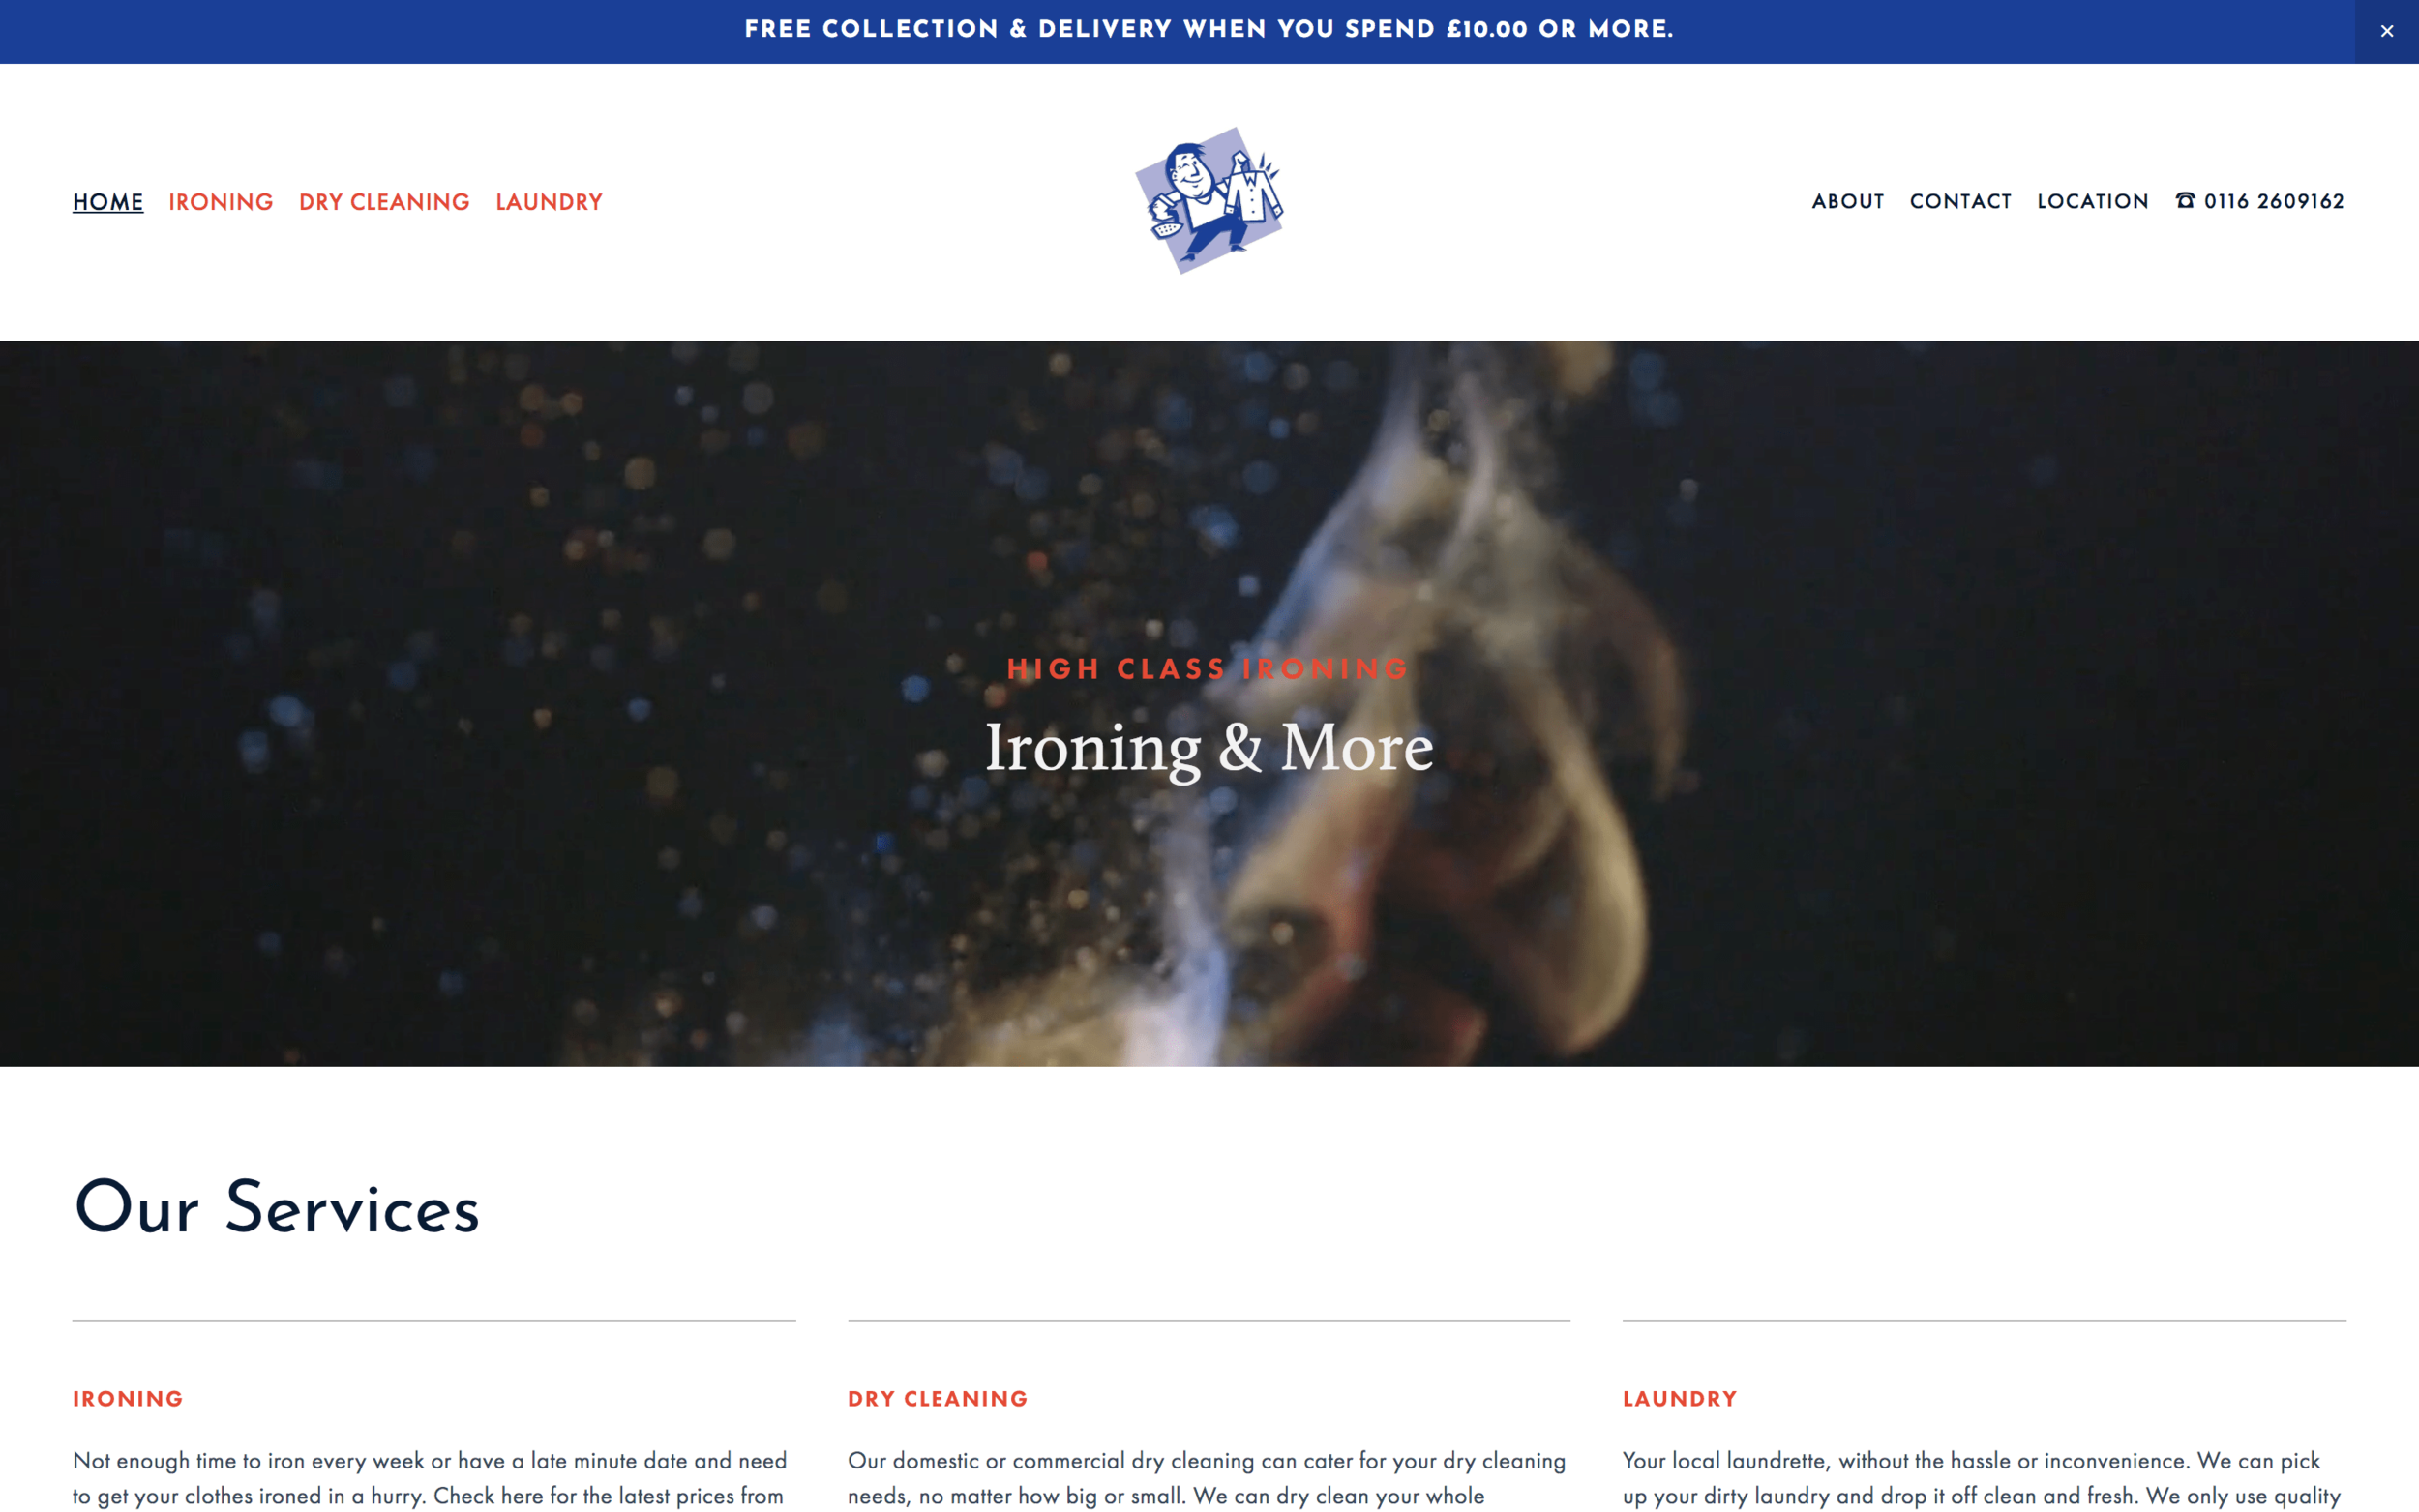 High Class Ironing Website Design